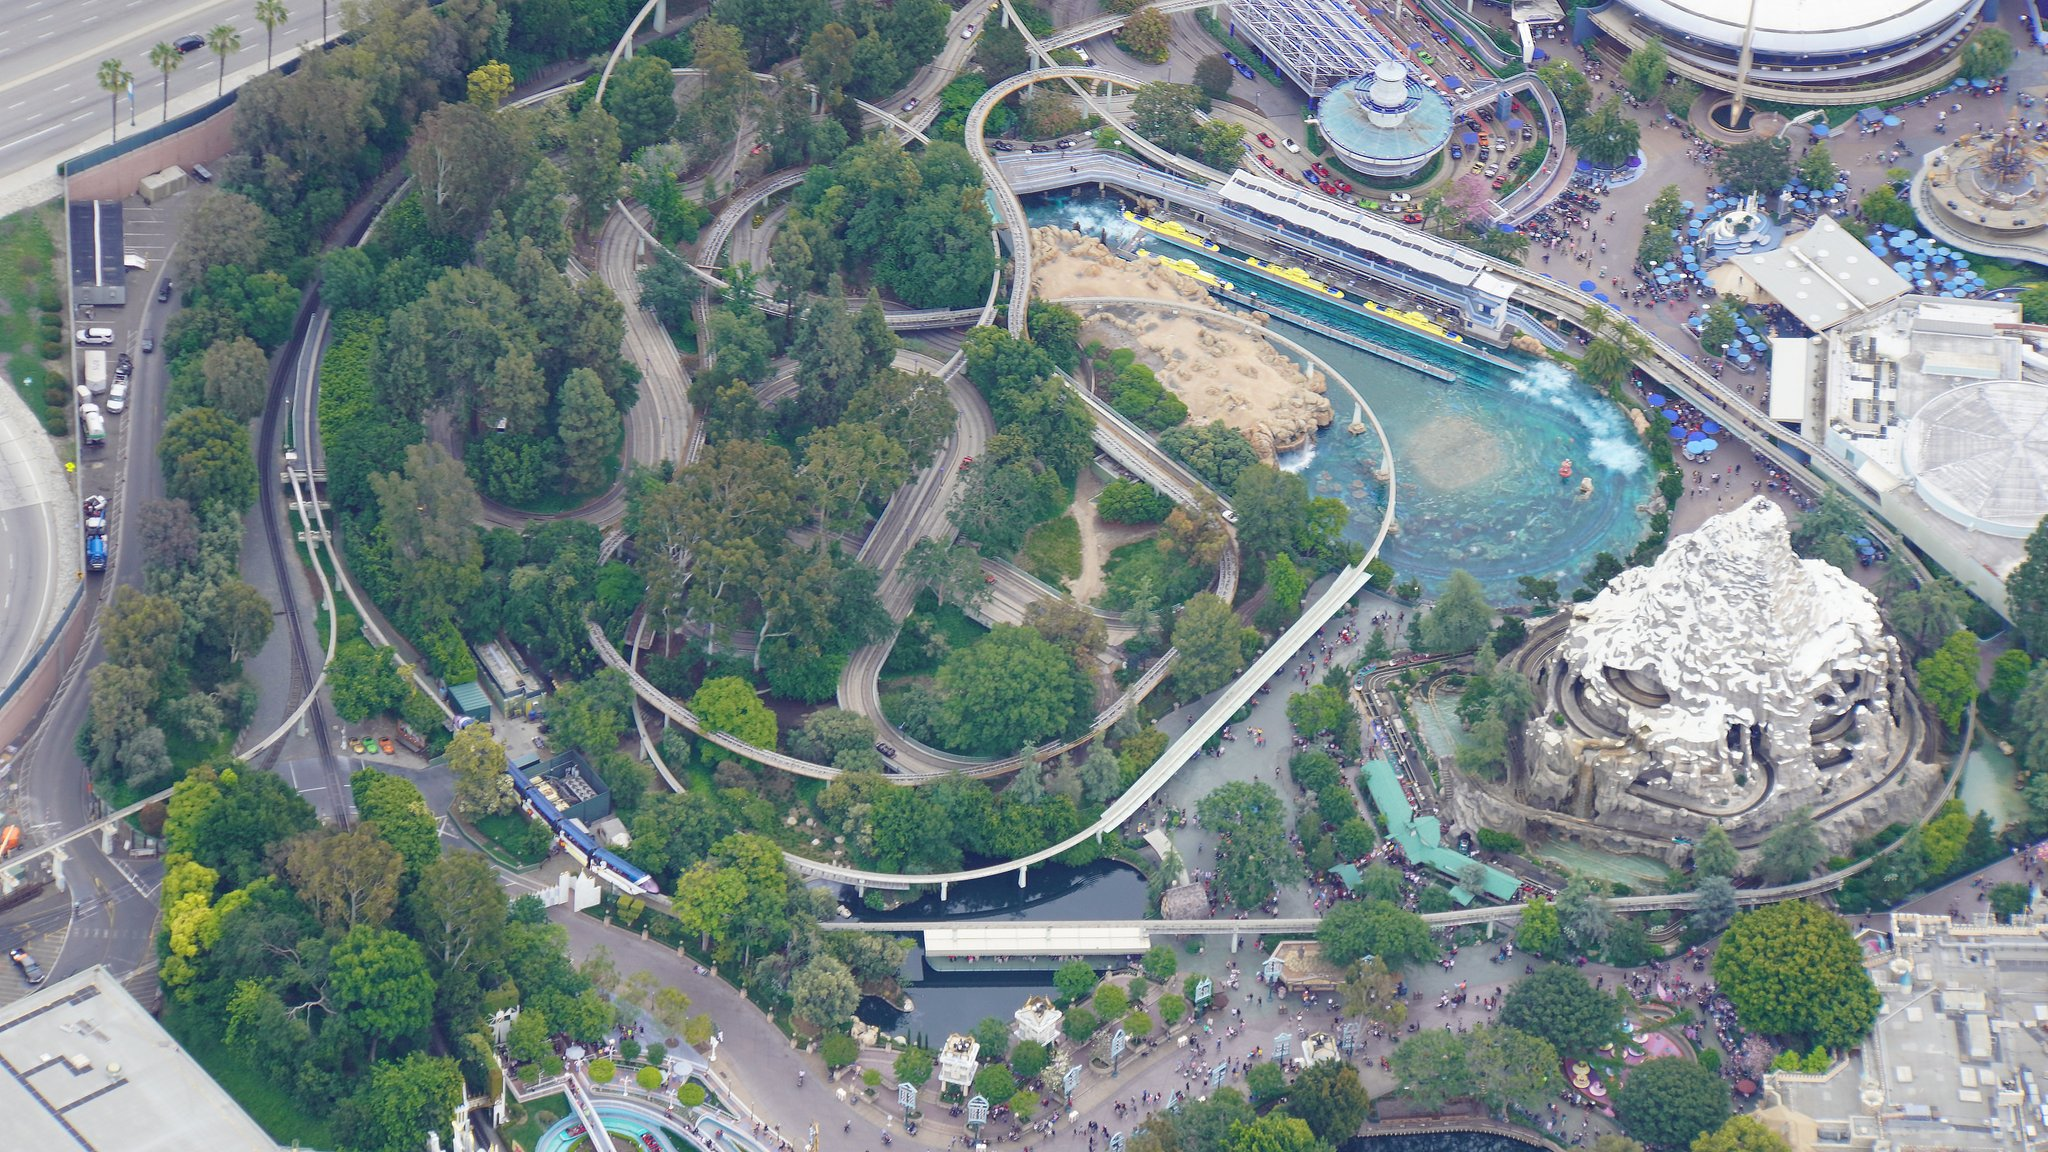 Disneyland Resort vu du ciel, des images sublimes! D6Cl3rxUcAAw4bf